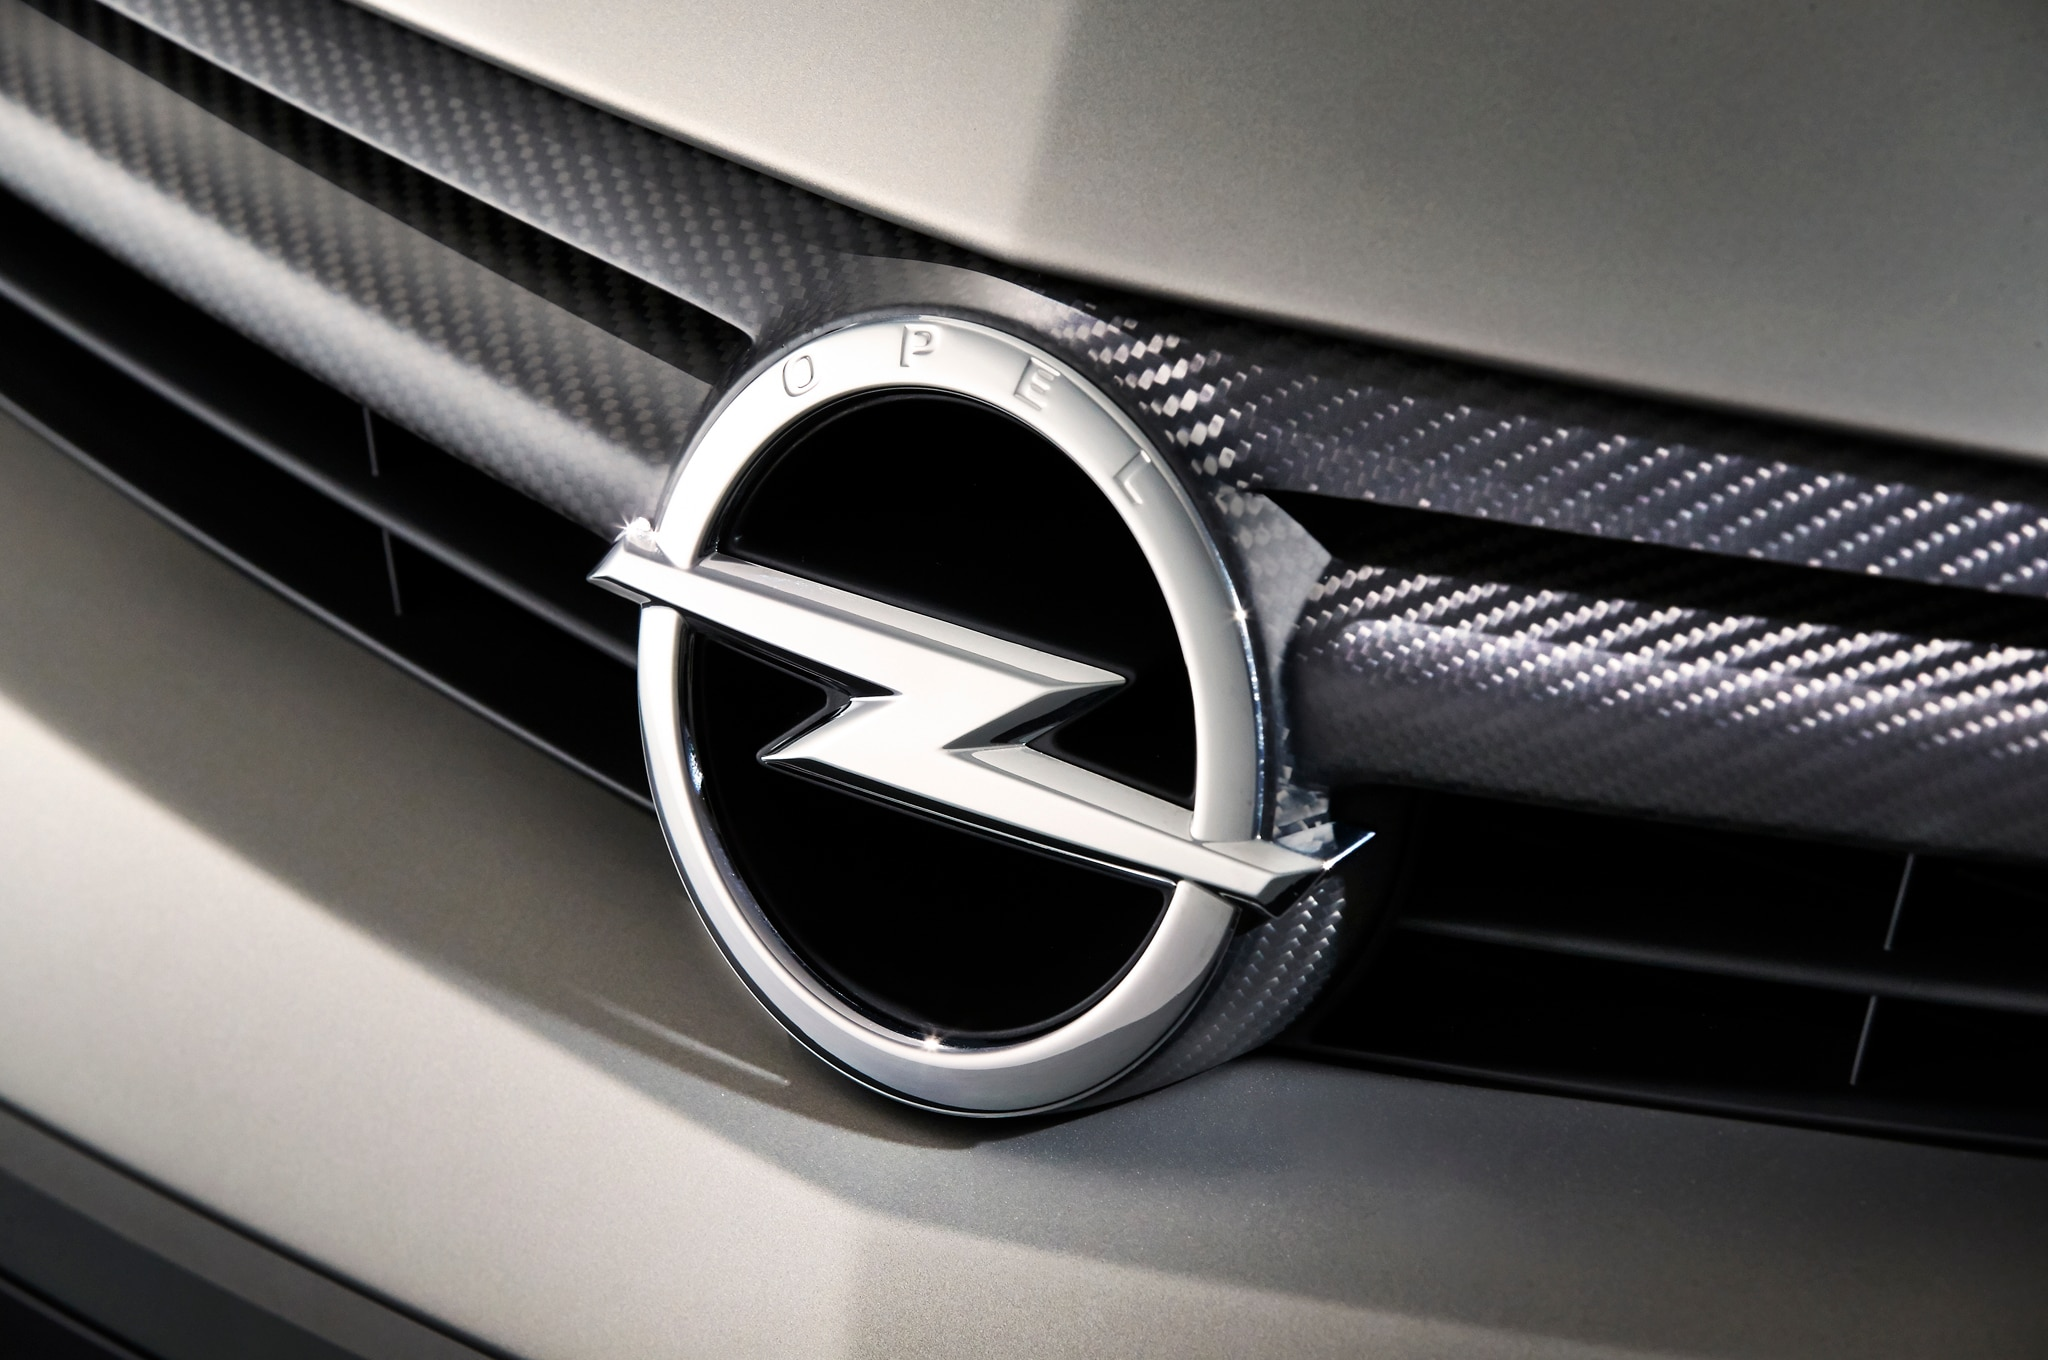 Opel Astra Opc Extreme Concept Badge 6 1